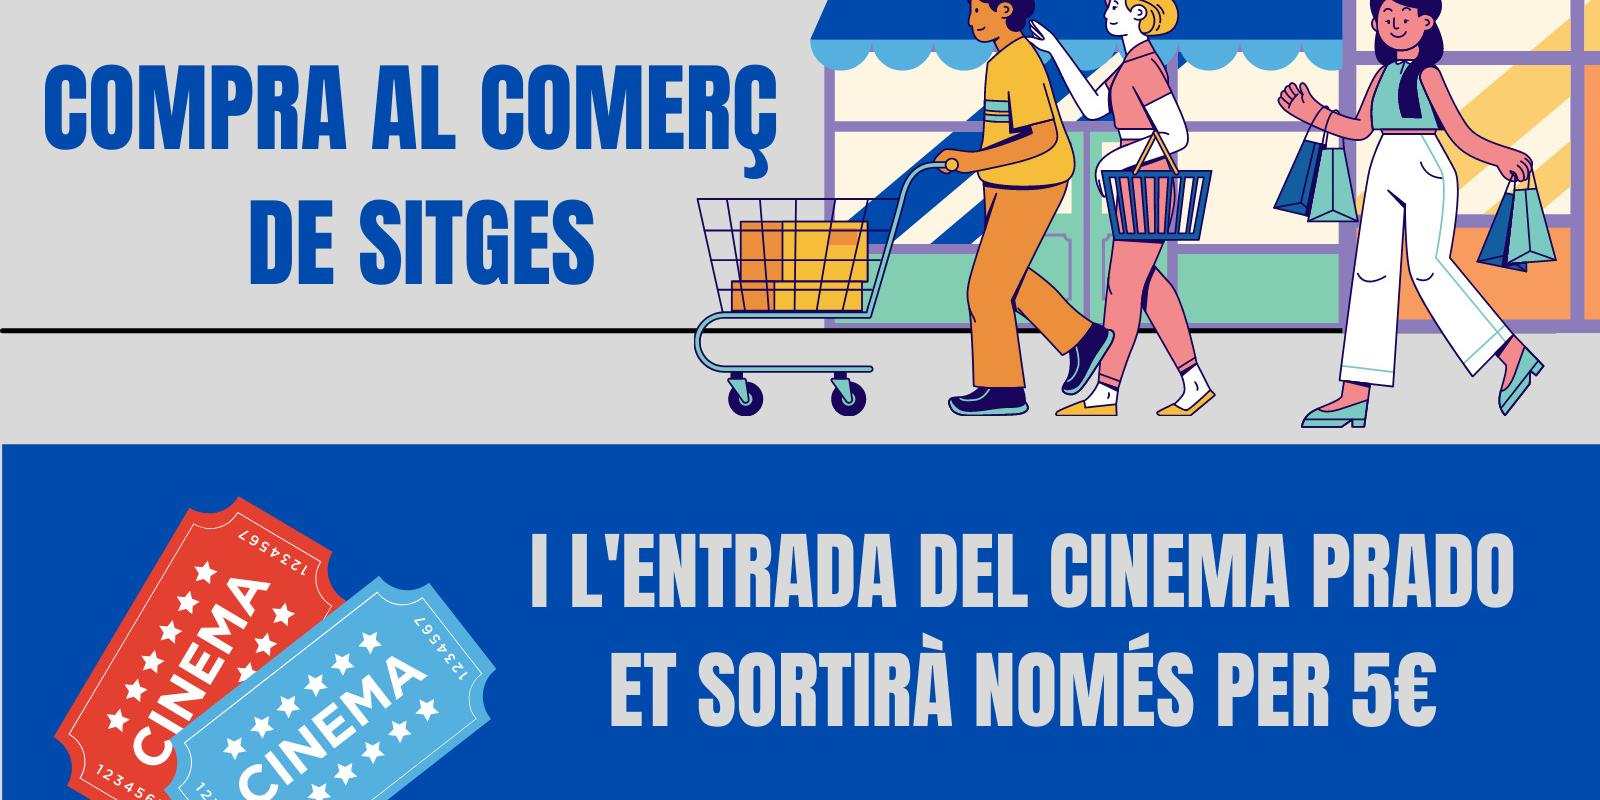 Descomptes de cinema per comprar al comerç local